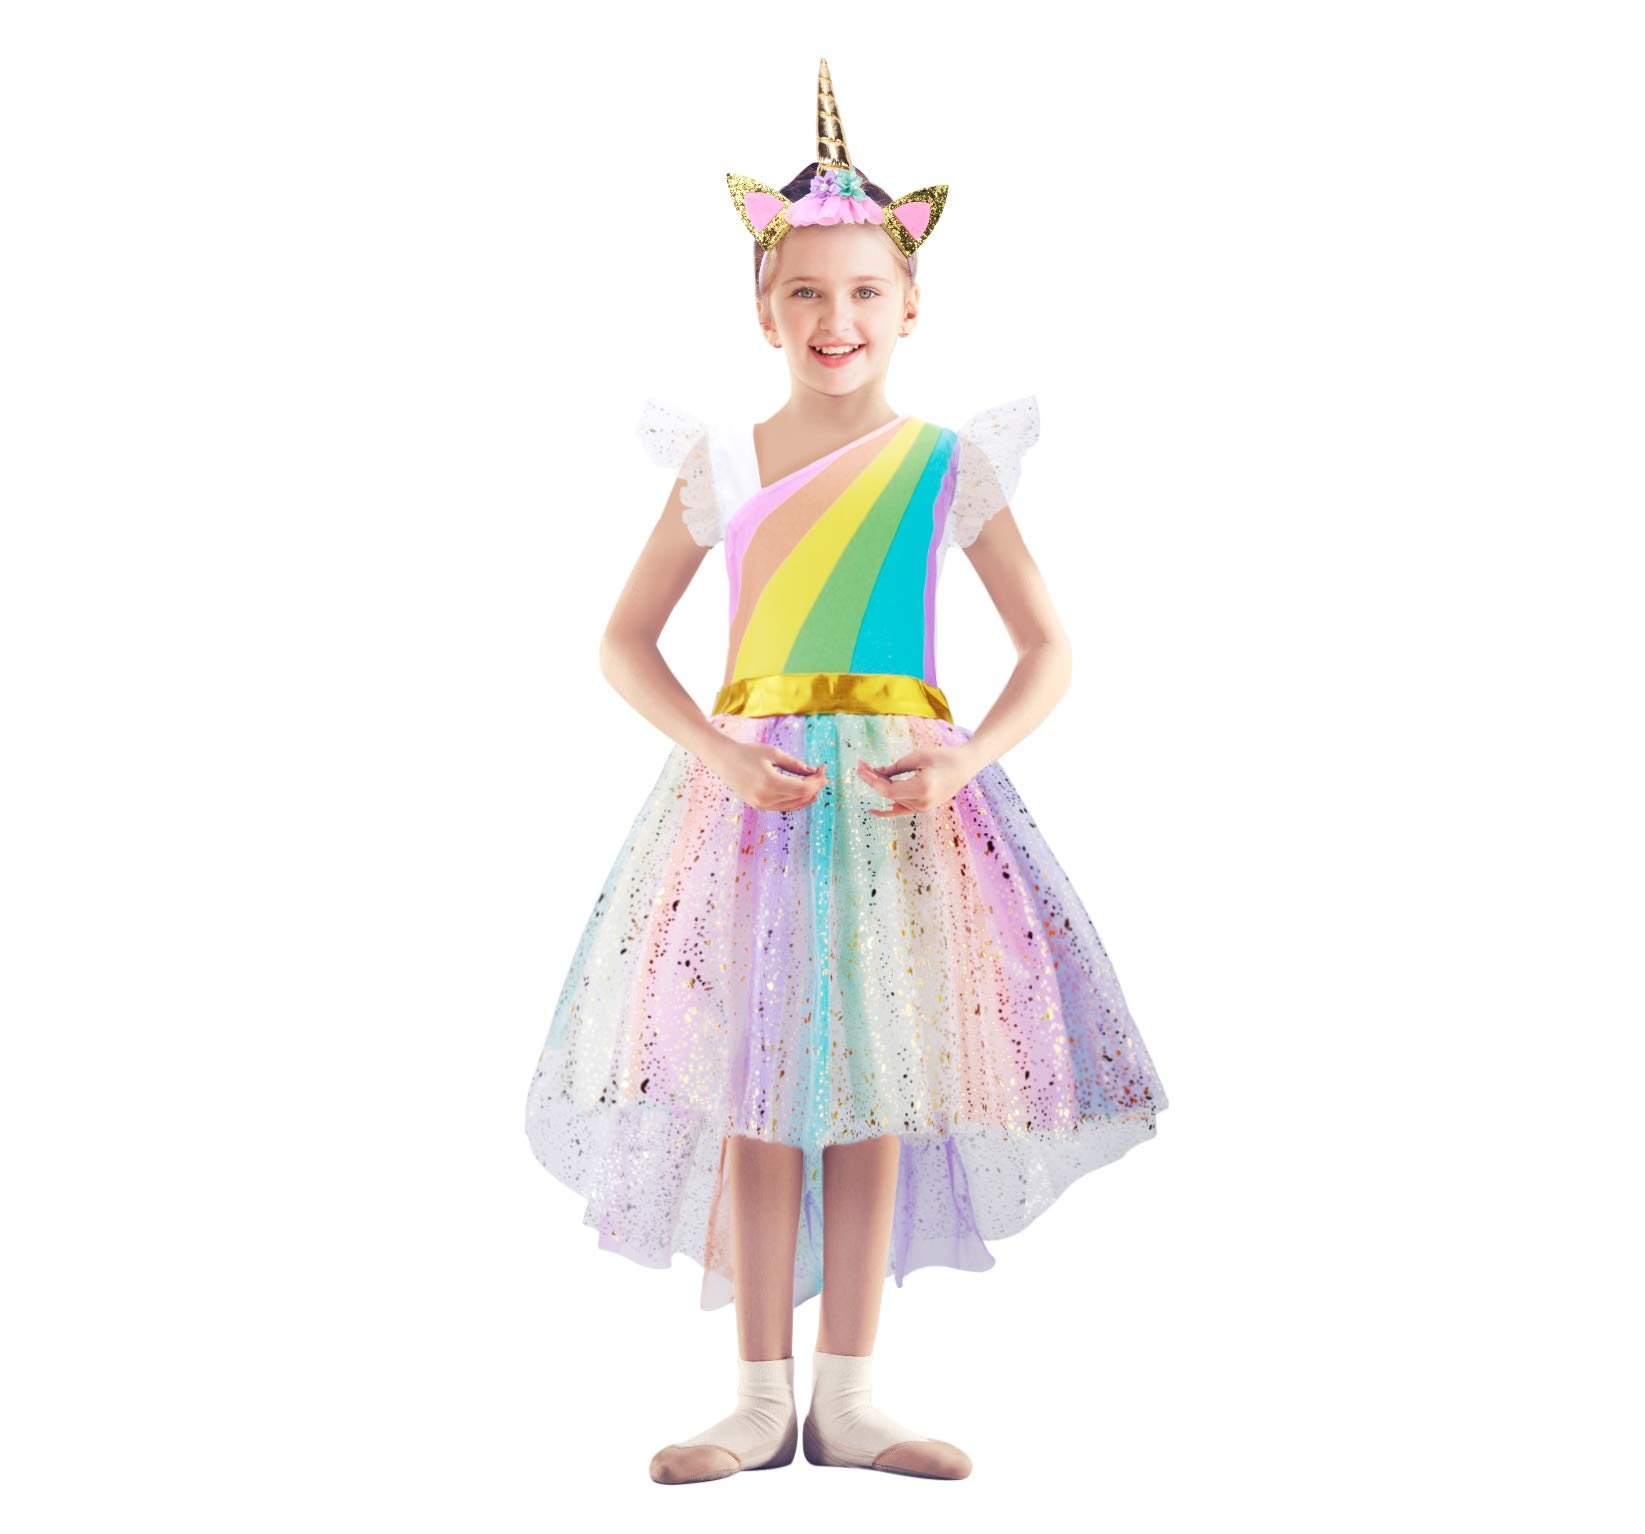 Girls Unicorn Costume Set Princess Rainbow Dress up for Party Supplies Outfits 7